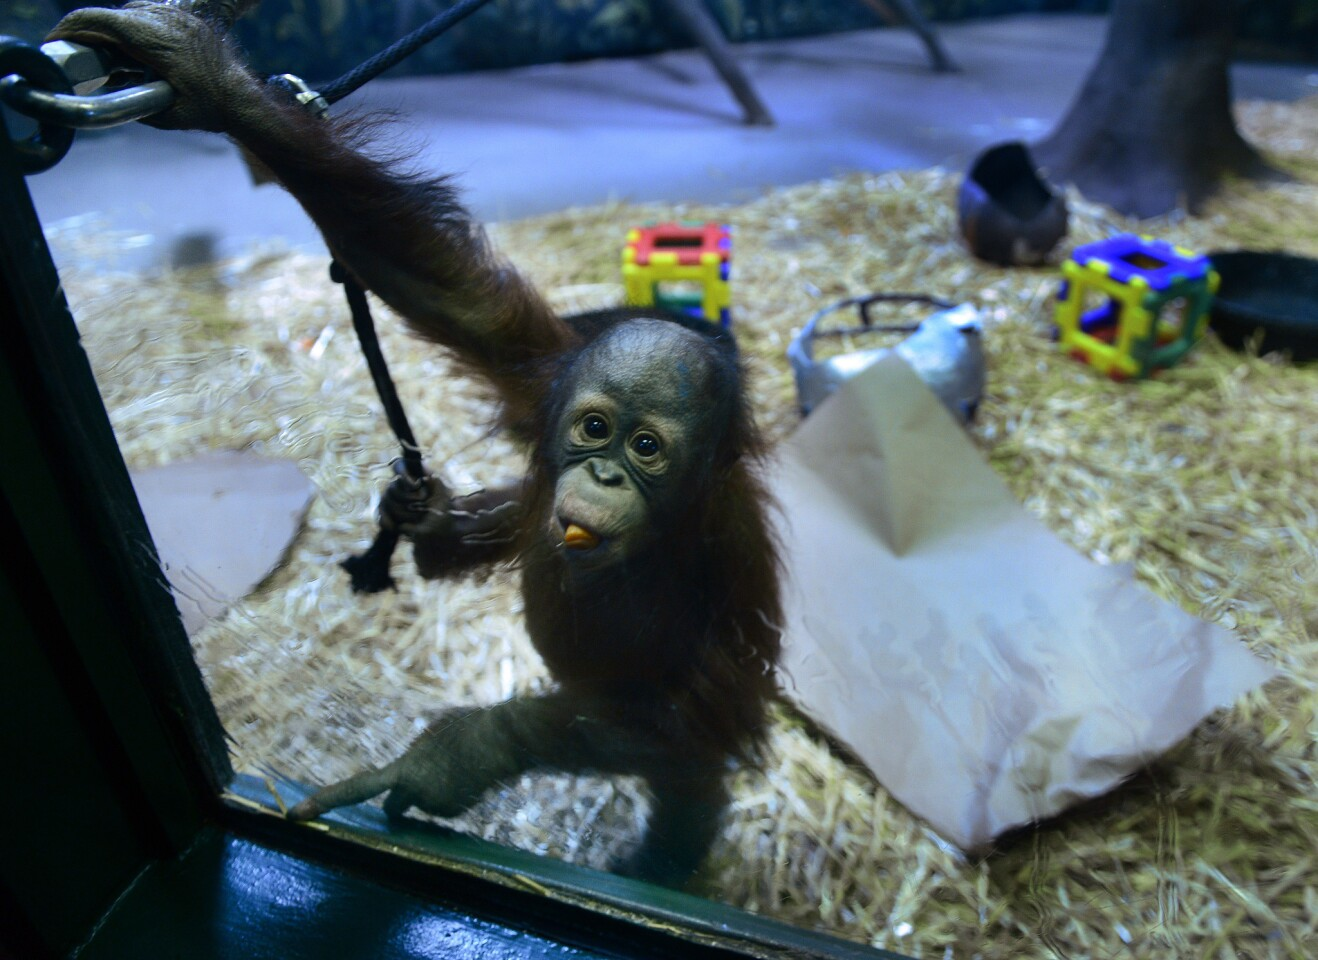 Tuah, a 1-year-old orangutan, appears in his enclosure at the Salt Lake City zoo, Thursday, Feb. 4, 2016. Tuah has predicted the Carolina Panthers will win the Super Bowl. Zoo spokeswoman Erica Hansen said the orangutan chewed up a cardboard Panthers sign and later kissed a papier-mache Panthers helmet. Hansen says he never touched the Denver Broncos sign or helmet. This was Tuah's first time handling the duties. His dad picked seven straight winners before dying in 2015. (Scott Sommerdorf /The Salt Lake Tribune via AP) DESERET NEWS OUT; LOCAL TELEVISION OUT; MAGS OUT; MANDATORY CREDIT